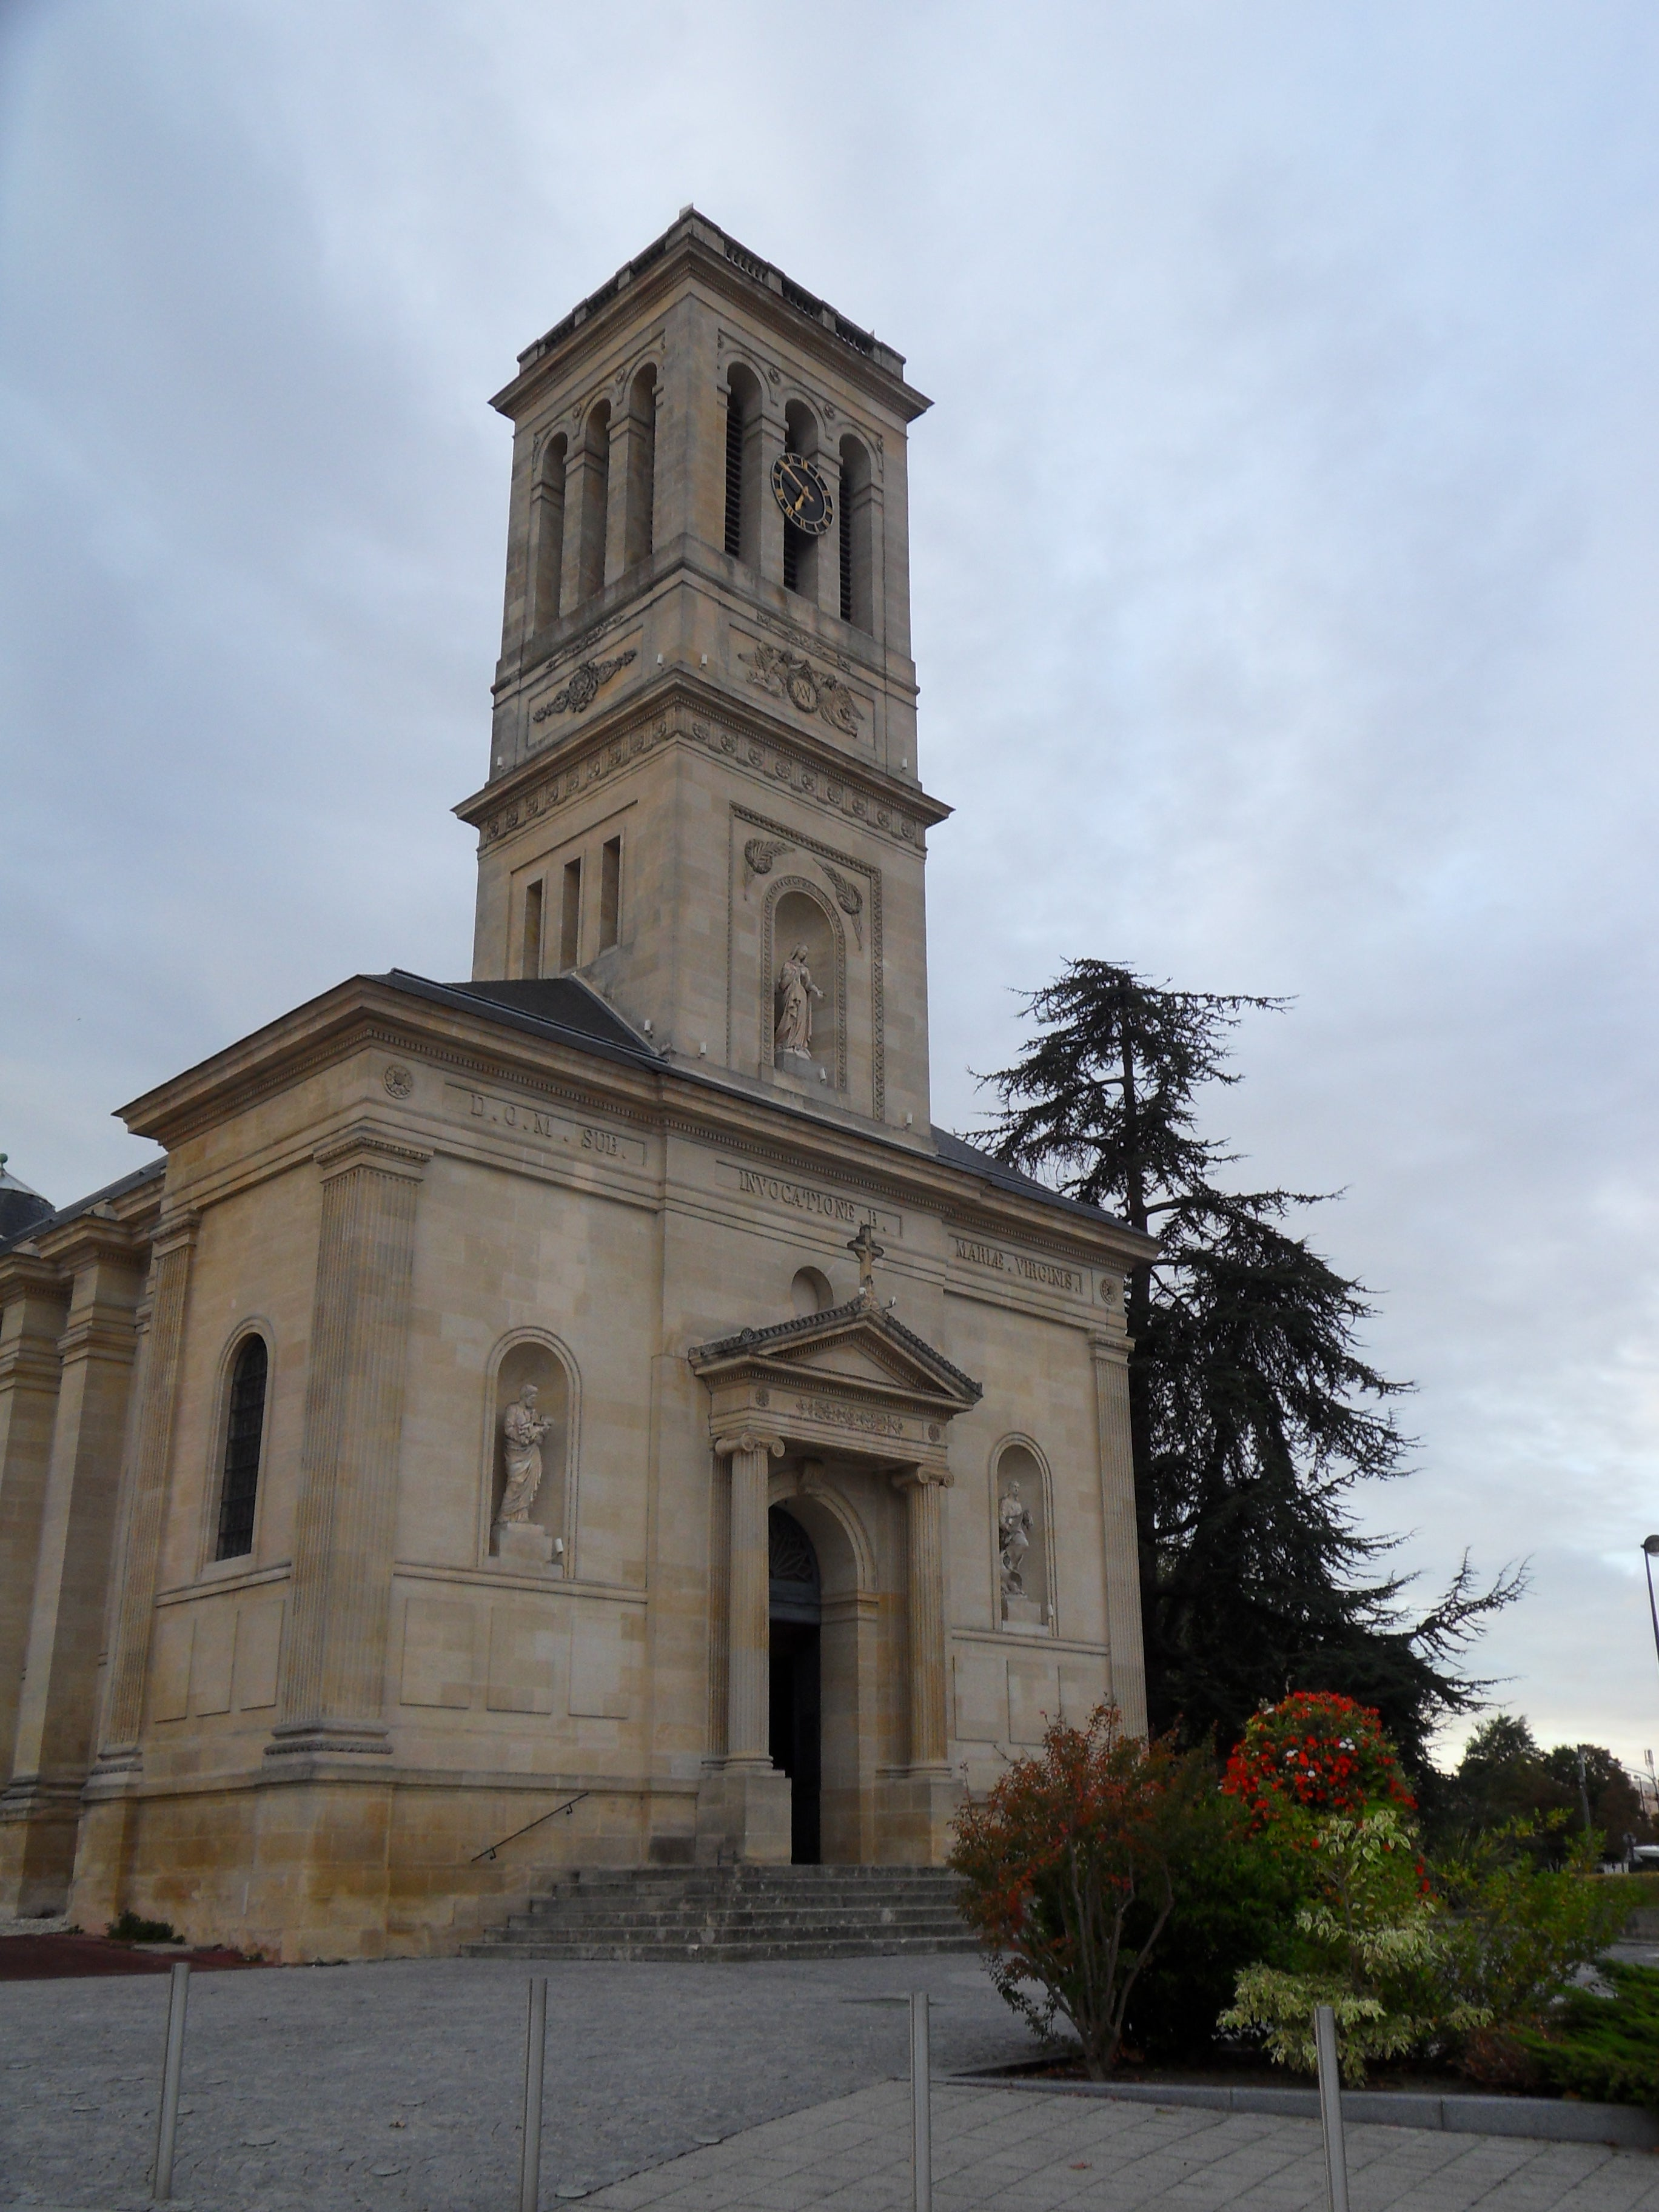 Forum of Talence